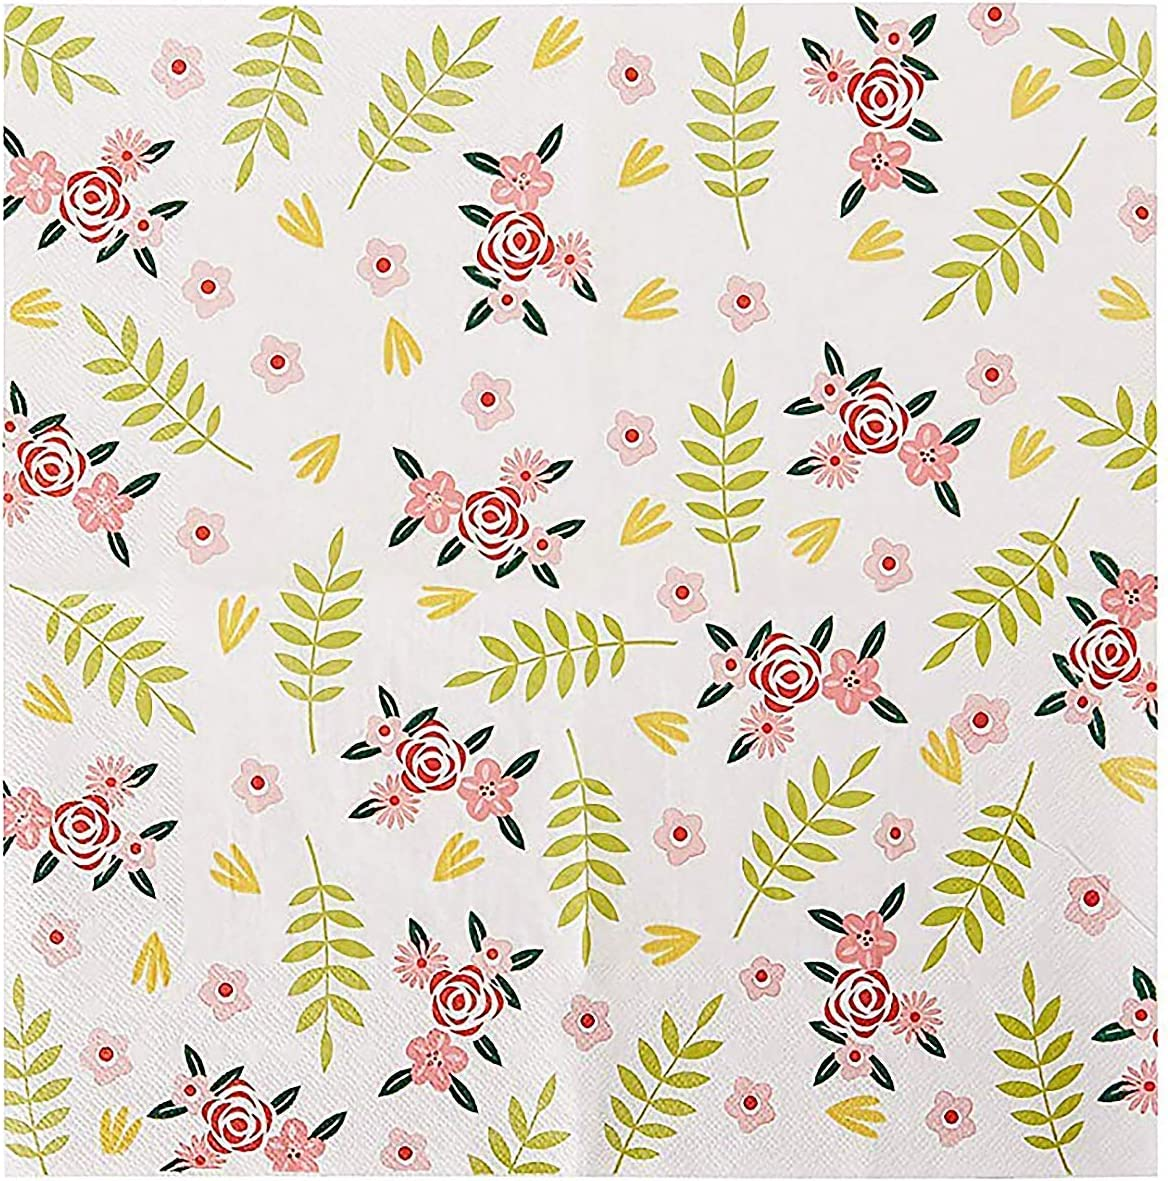 Floral Paper Napkins Bridal Shower Tea Party Napkins 6 5 Inches 100 Pack Kitchen Dining Amazon Com